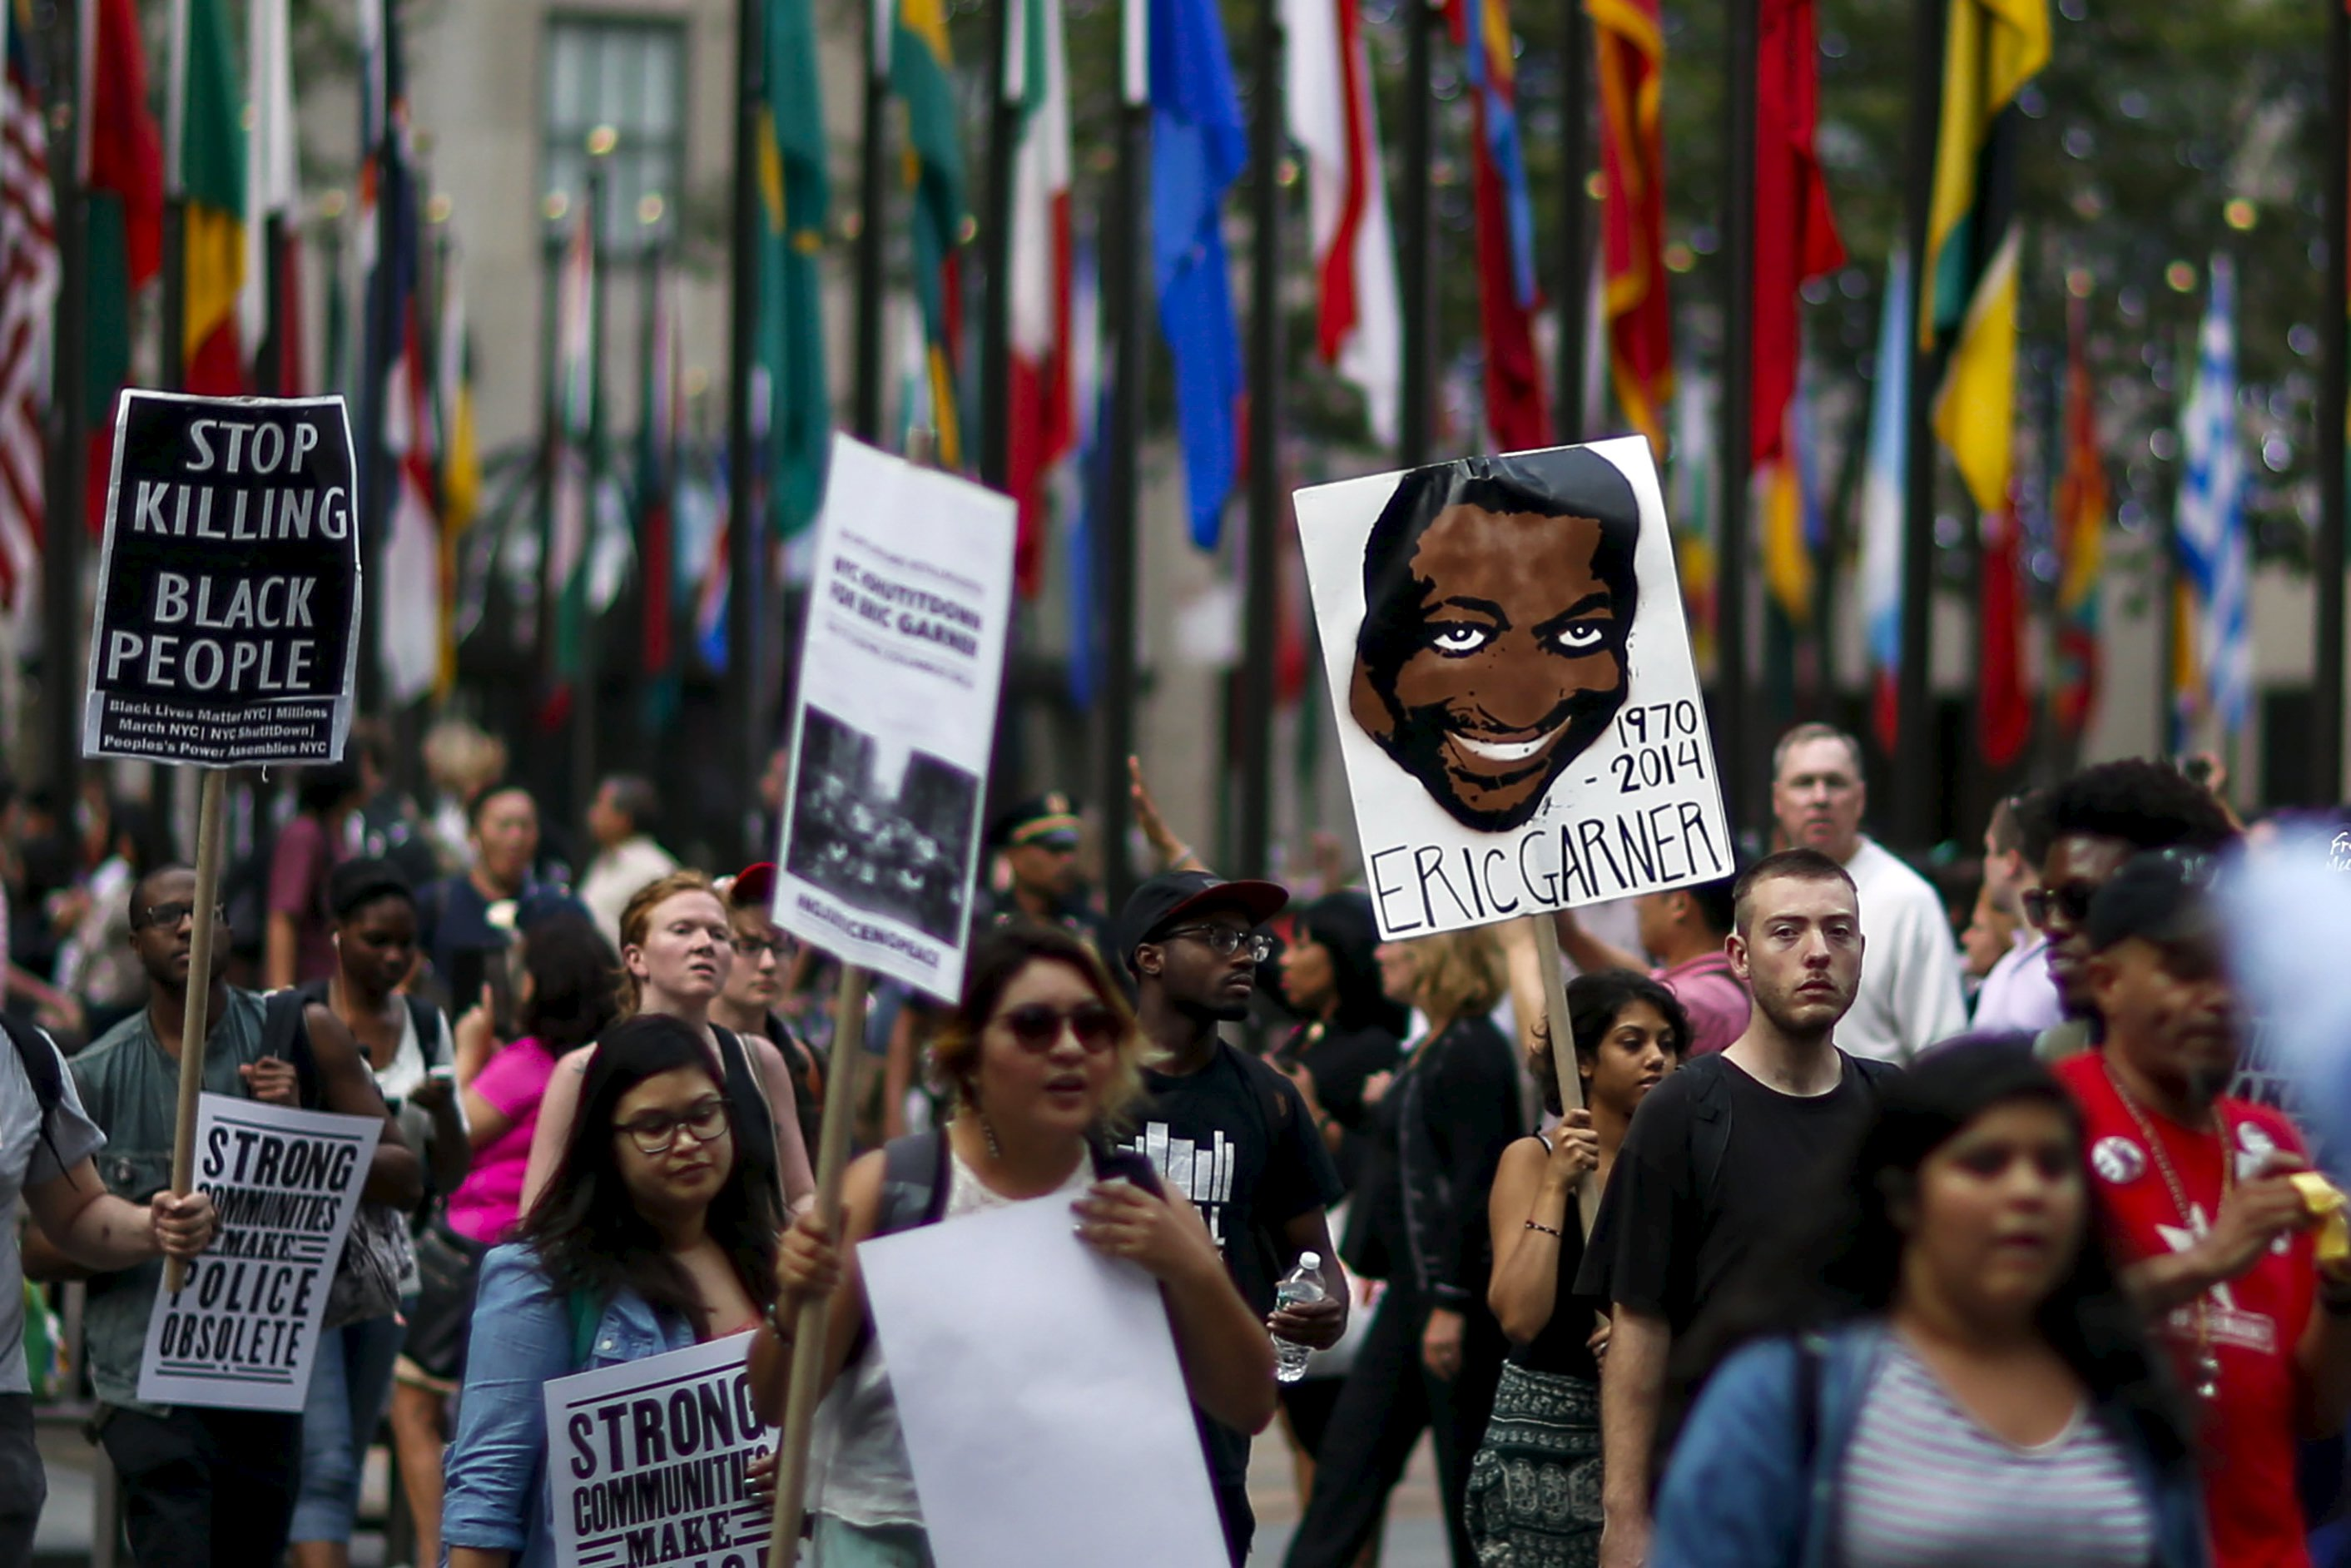 Protester march for Eric Garner who was killed one year ago by police in New York July 17, 2015. Family and supporters on Friday marked the anniversary of the police killing of Eric Garner with rallies and vigils demanding police reforms and justice in the controversial case. REUTERS/Eduardo Munoz